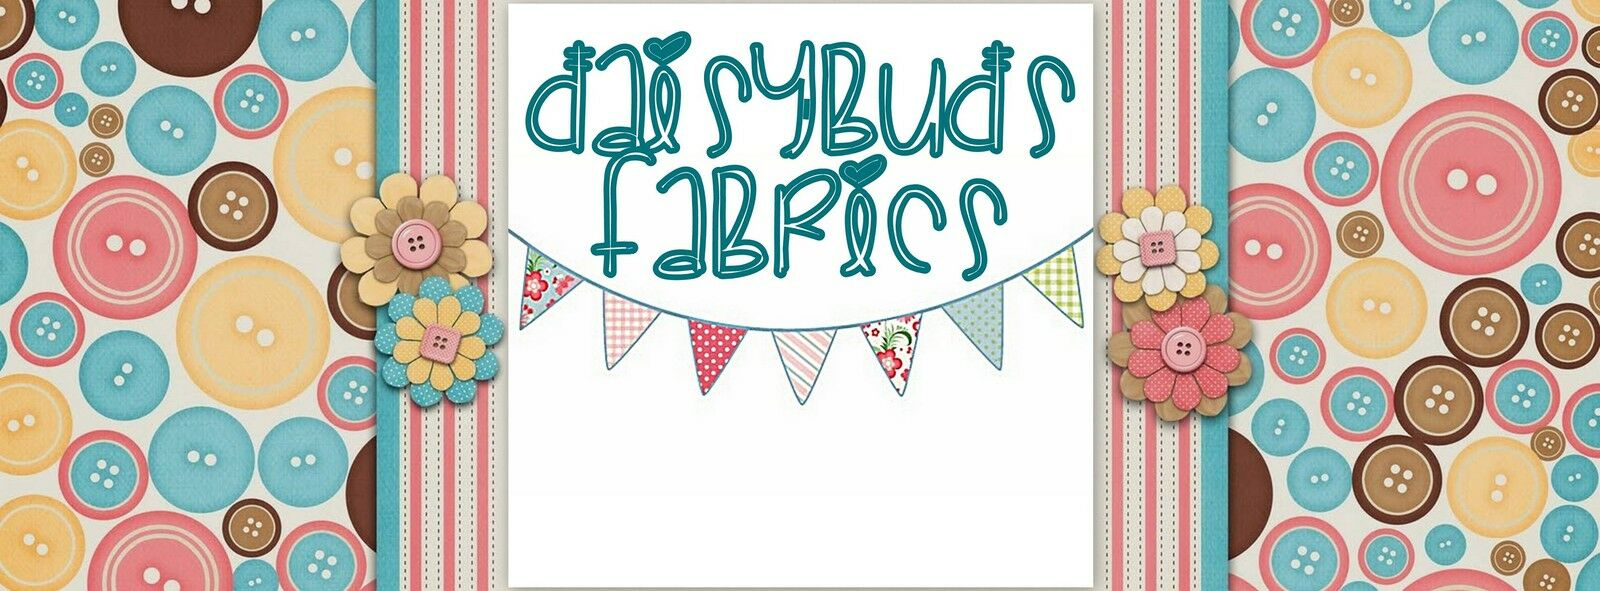 Daisybuds Fabrics and Crafts